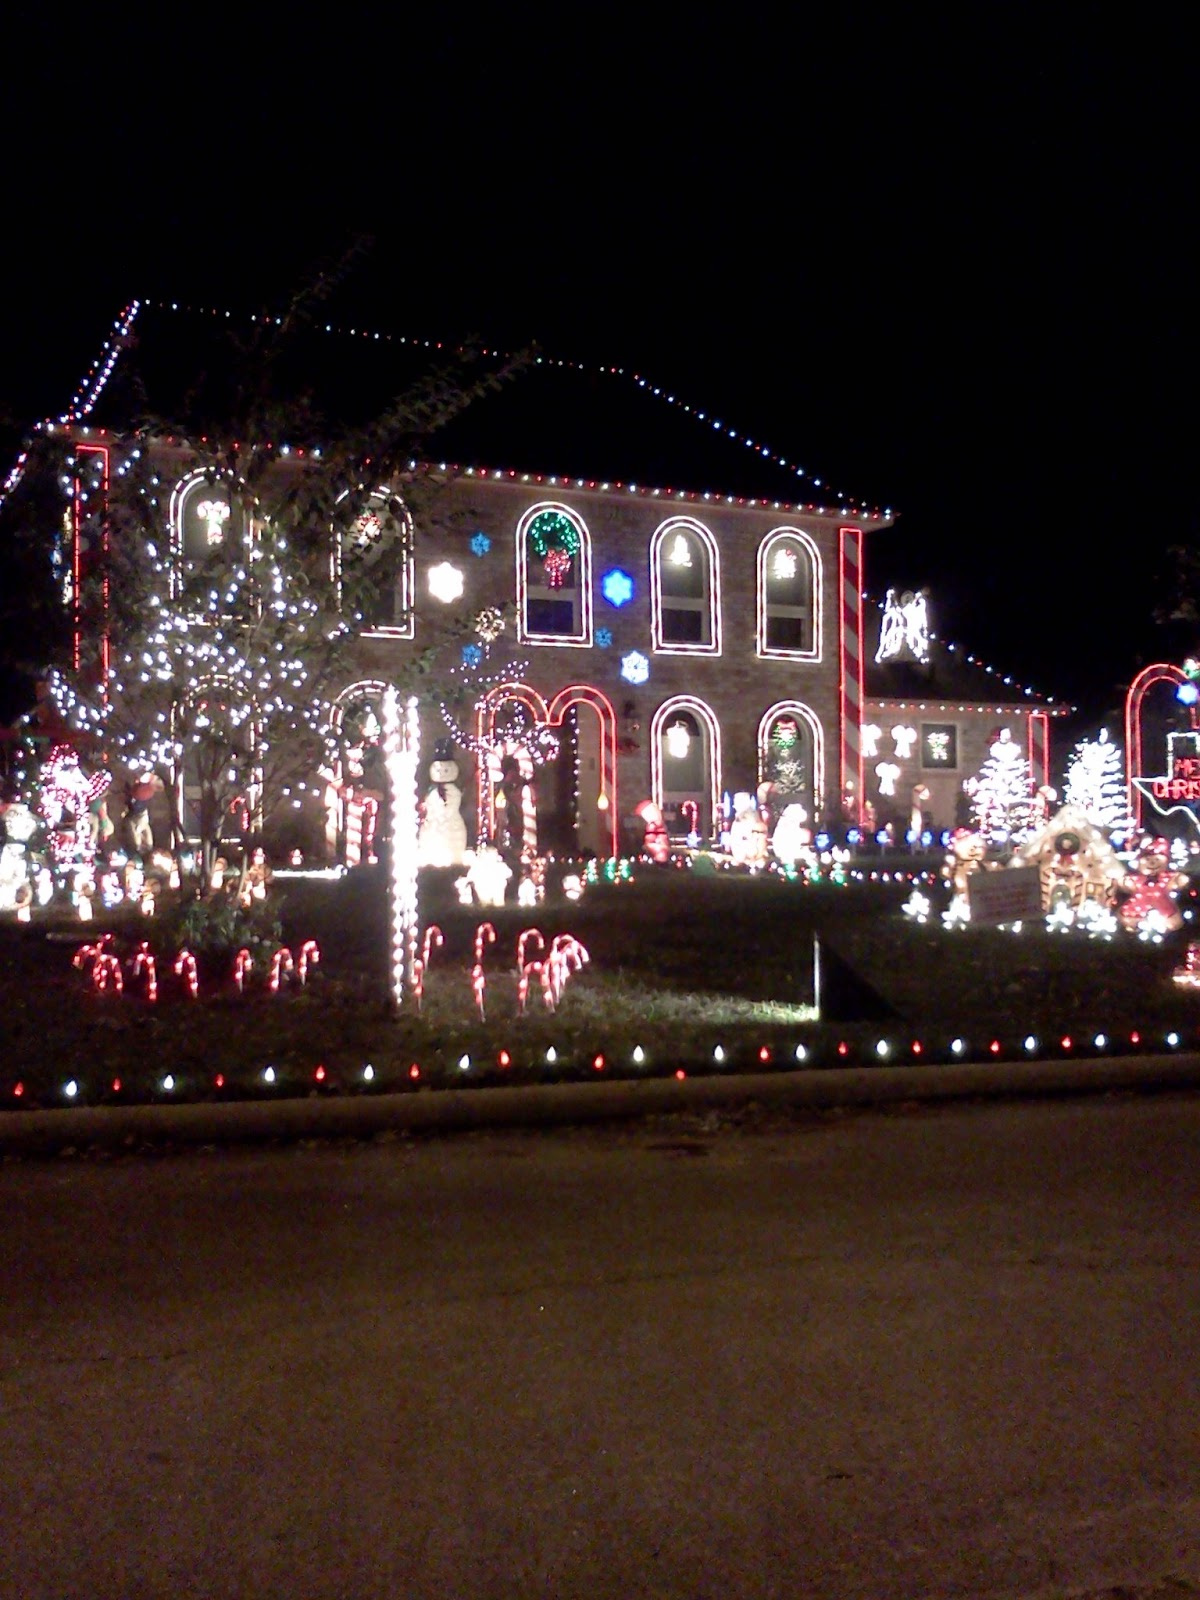 Images of Prestonwood Christmas Lights - Home Decoration Ideas